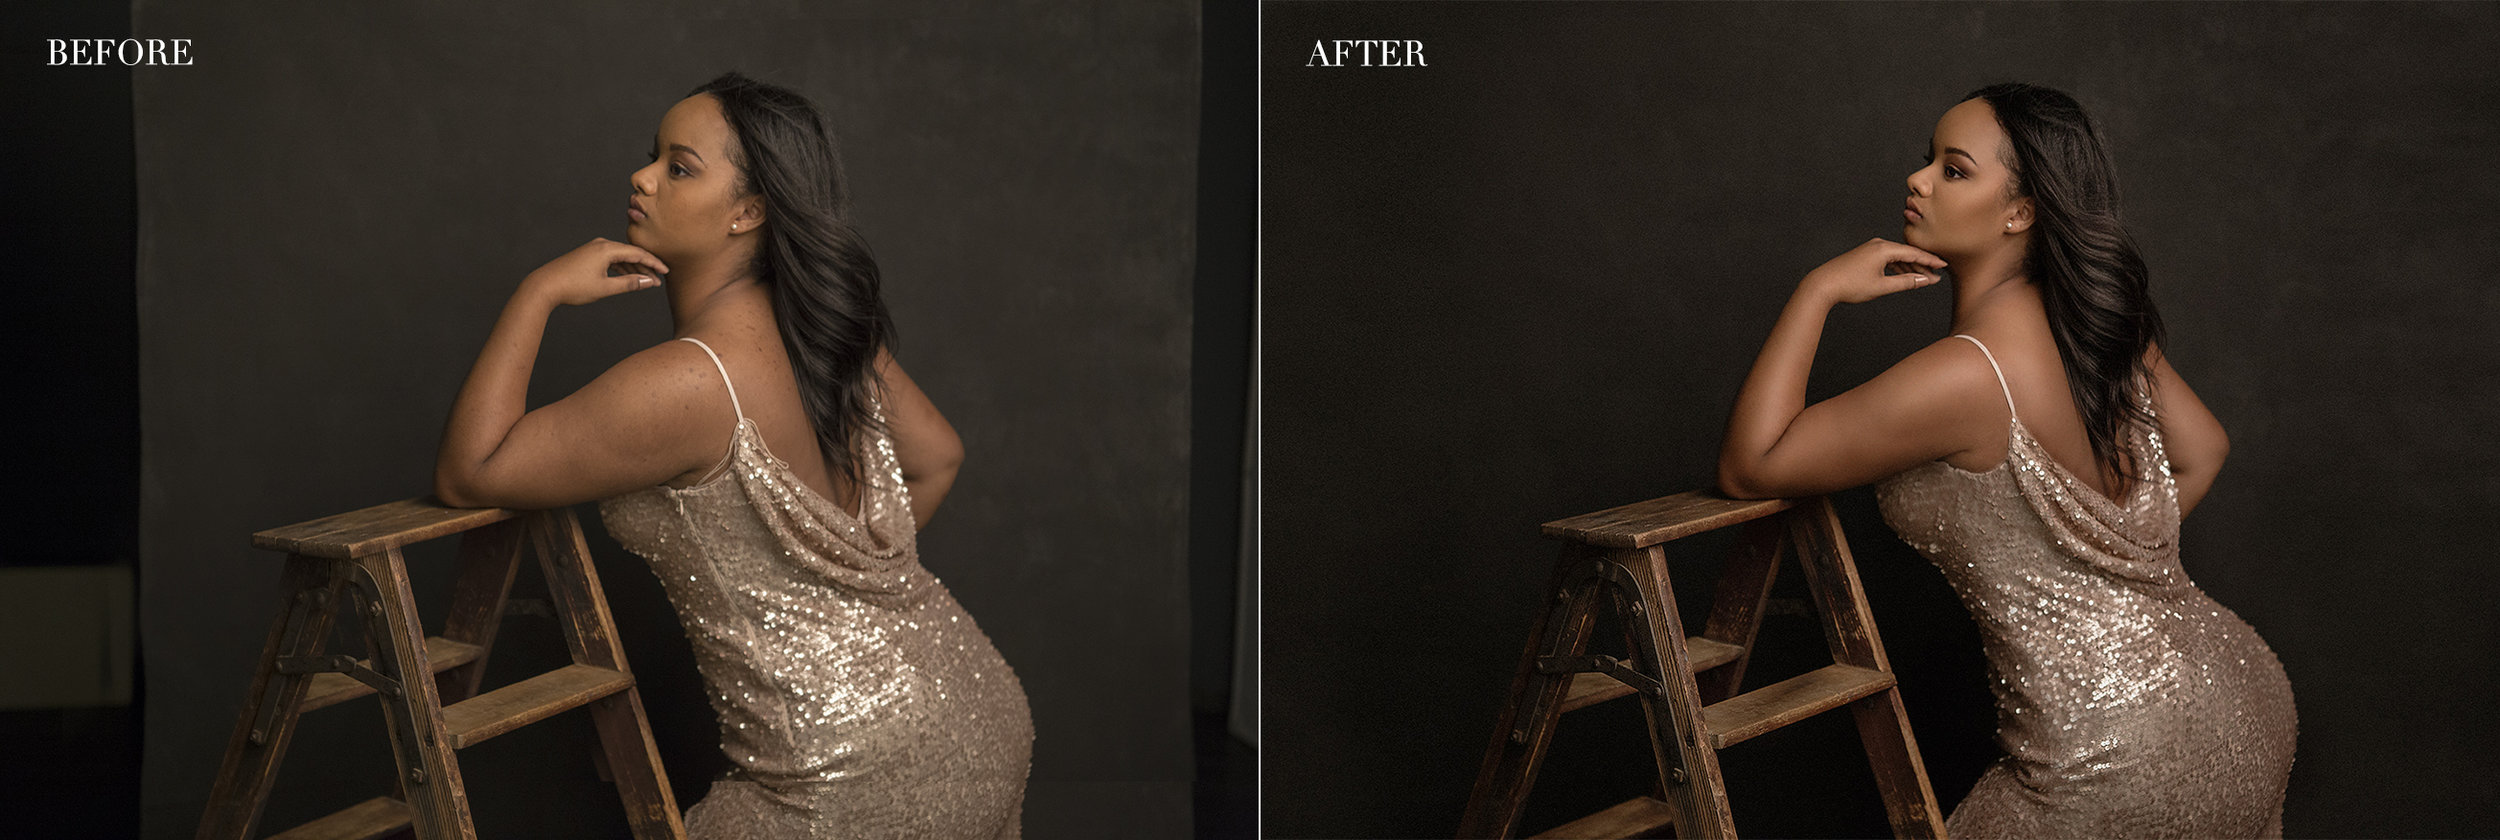 retouching-before-after-vania.jpg